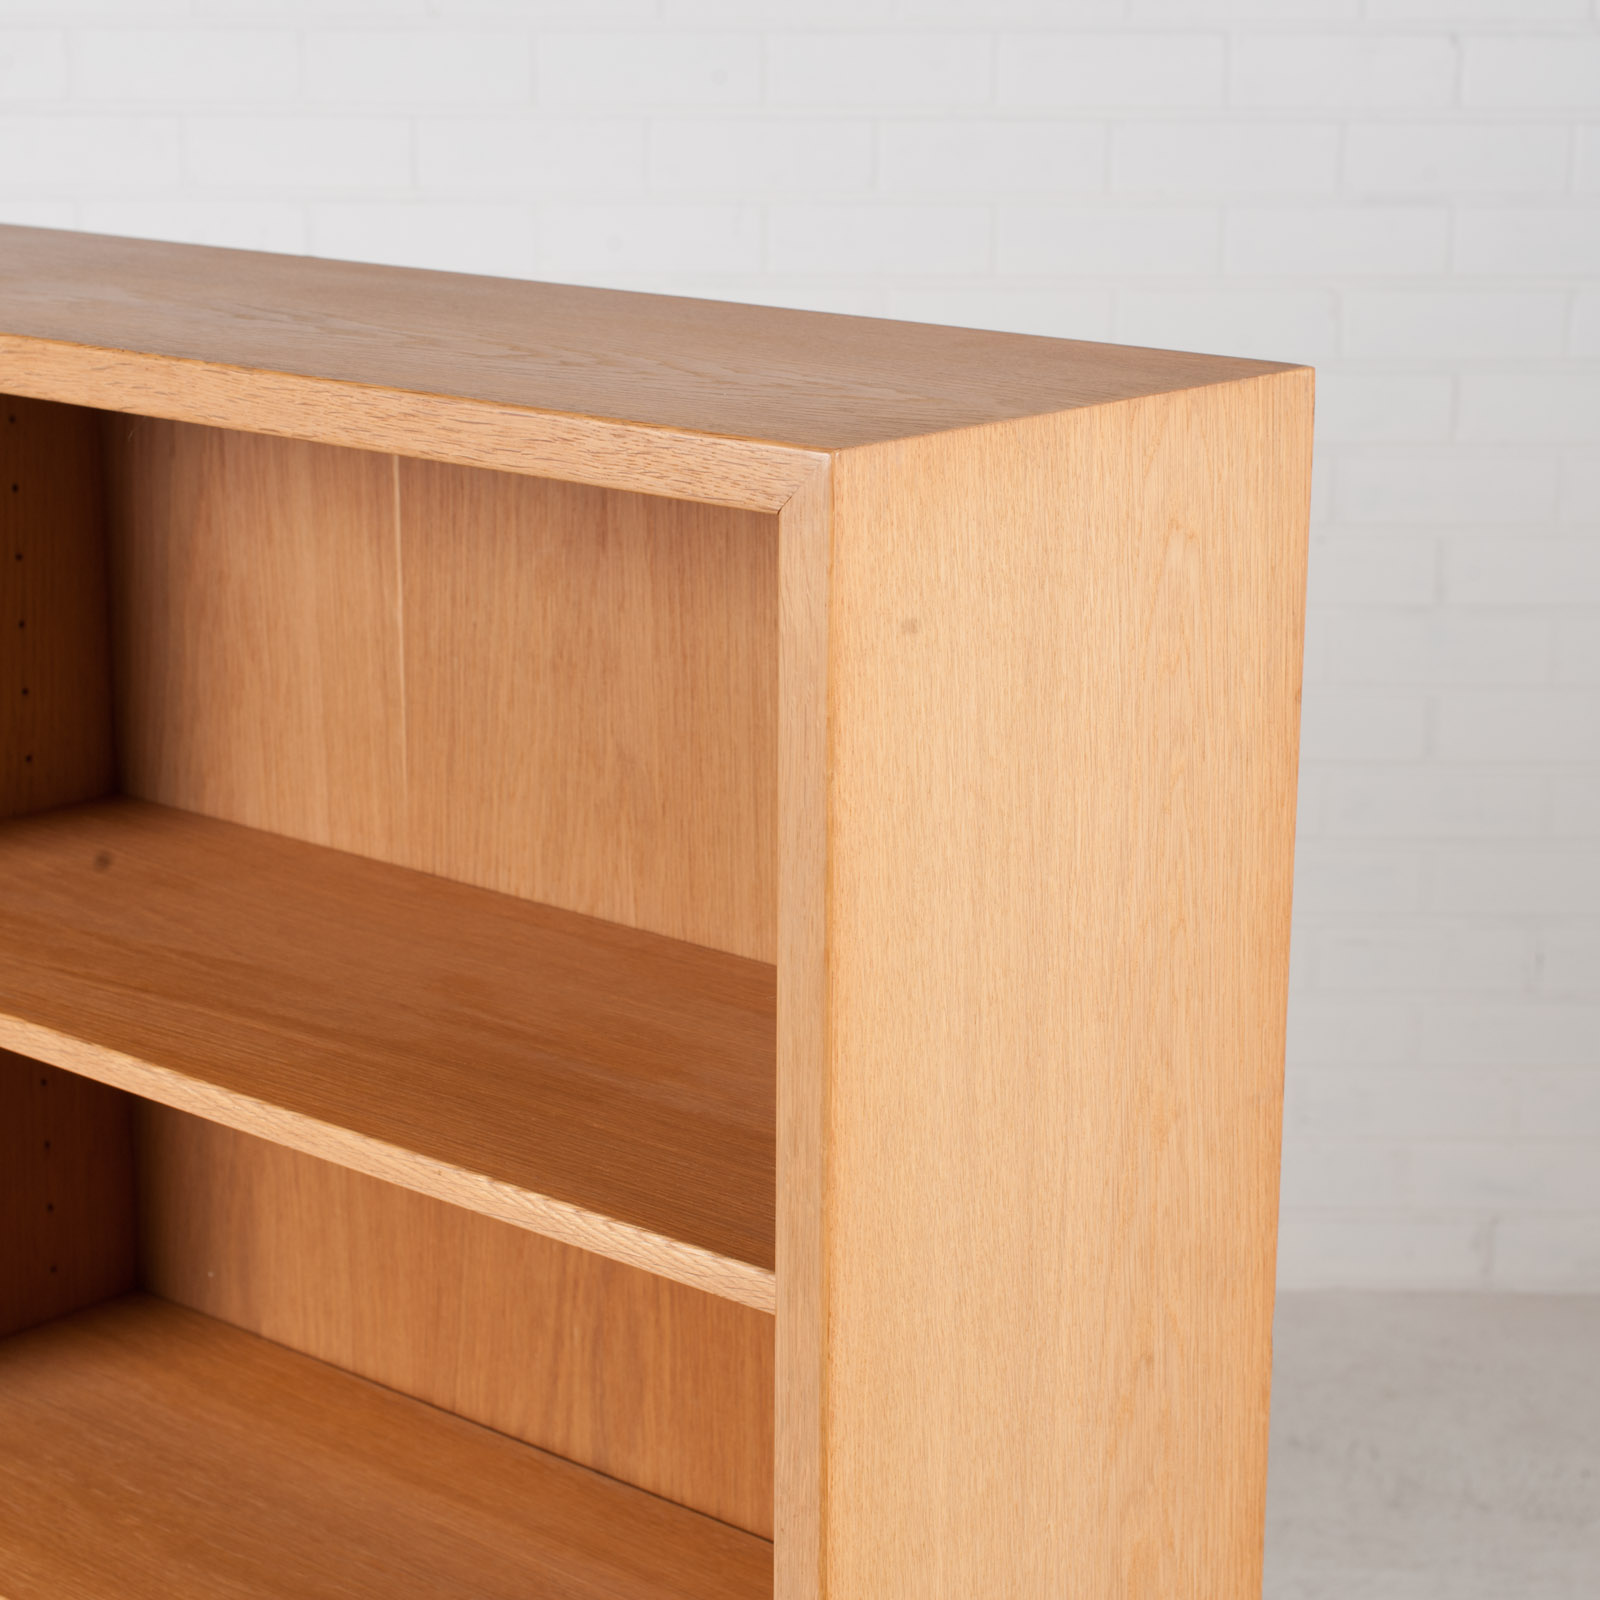 Bookcase By Borge Mogensen In Oak 1960s Denmark 08